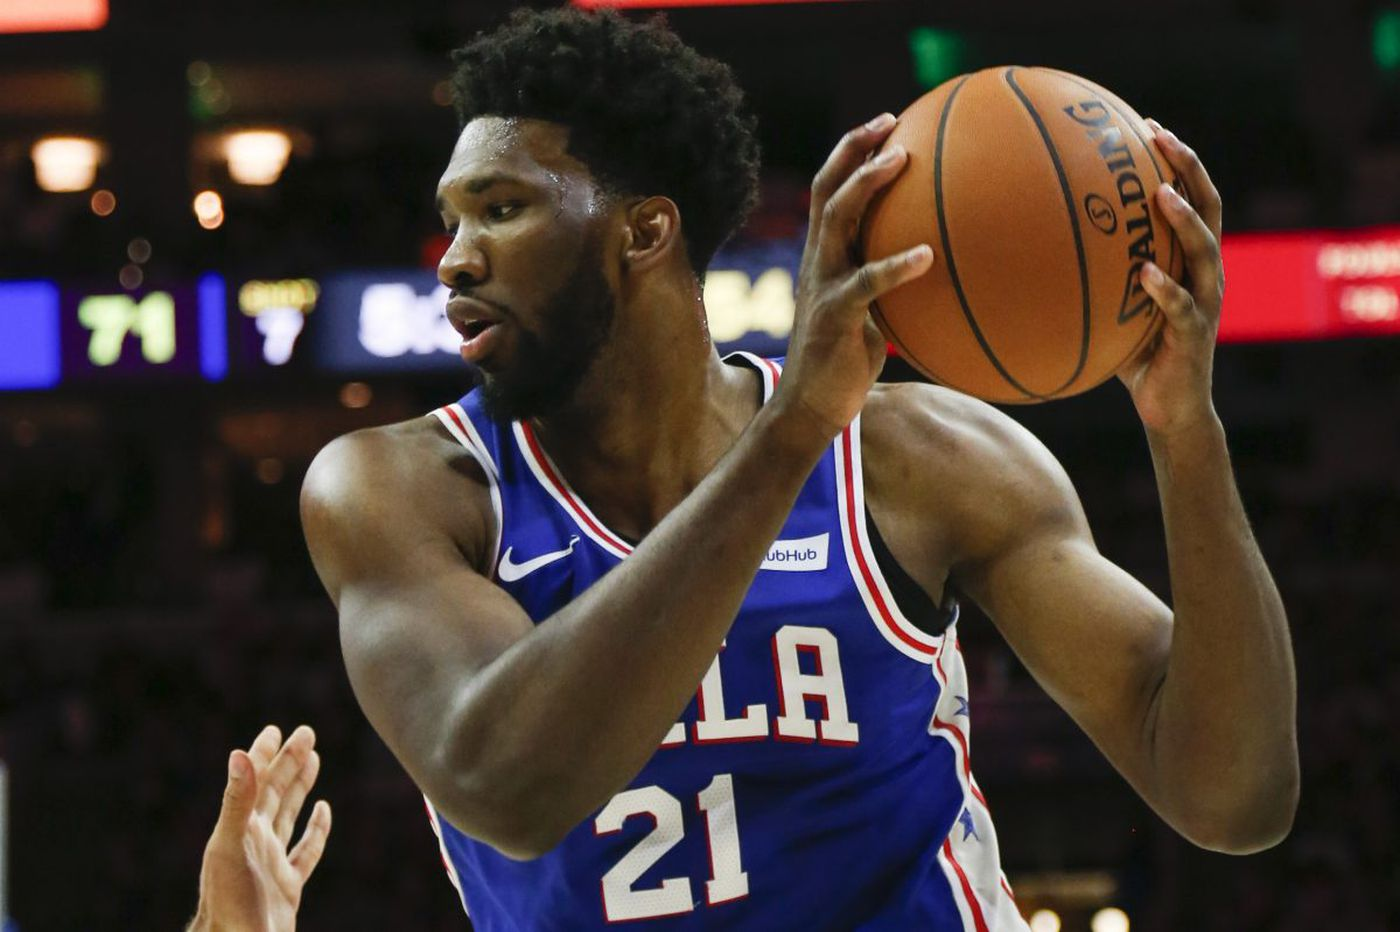 """Sixers' Joel Embiid is """"available"""" to play in back-to-backs, against Bucks on Monday"""